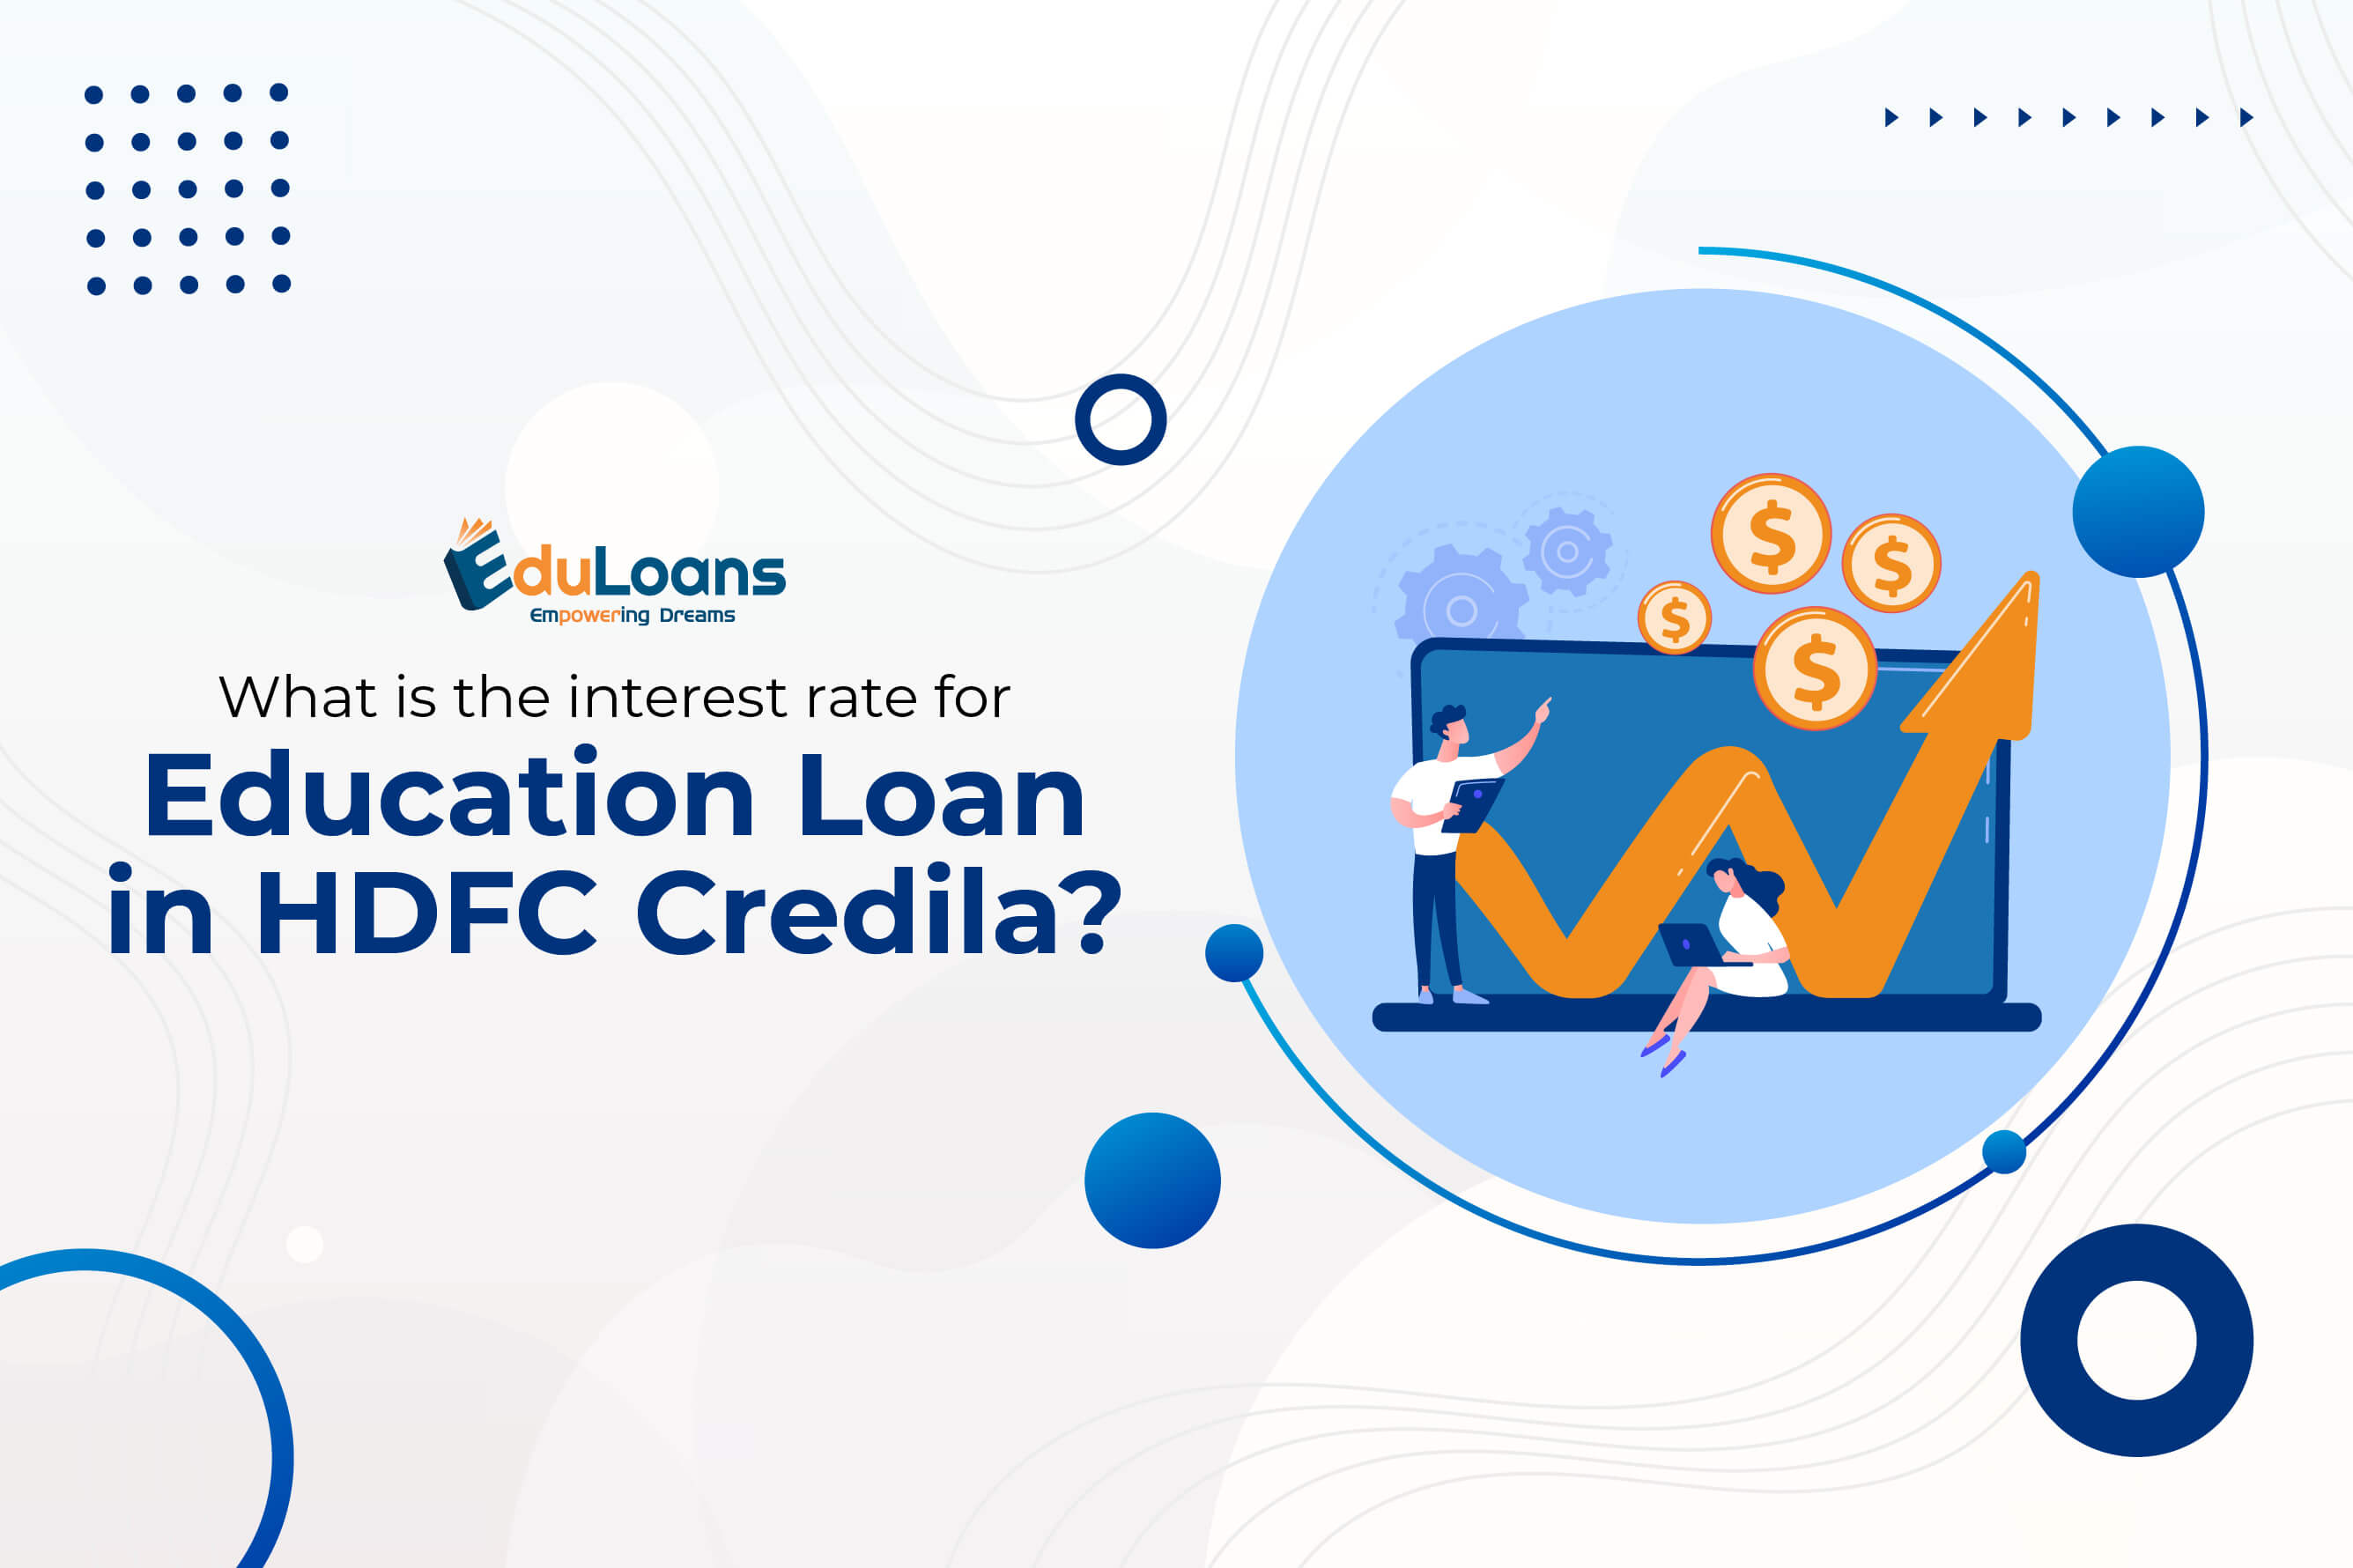 What is the interest rate for education loan in HDFC Credila?